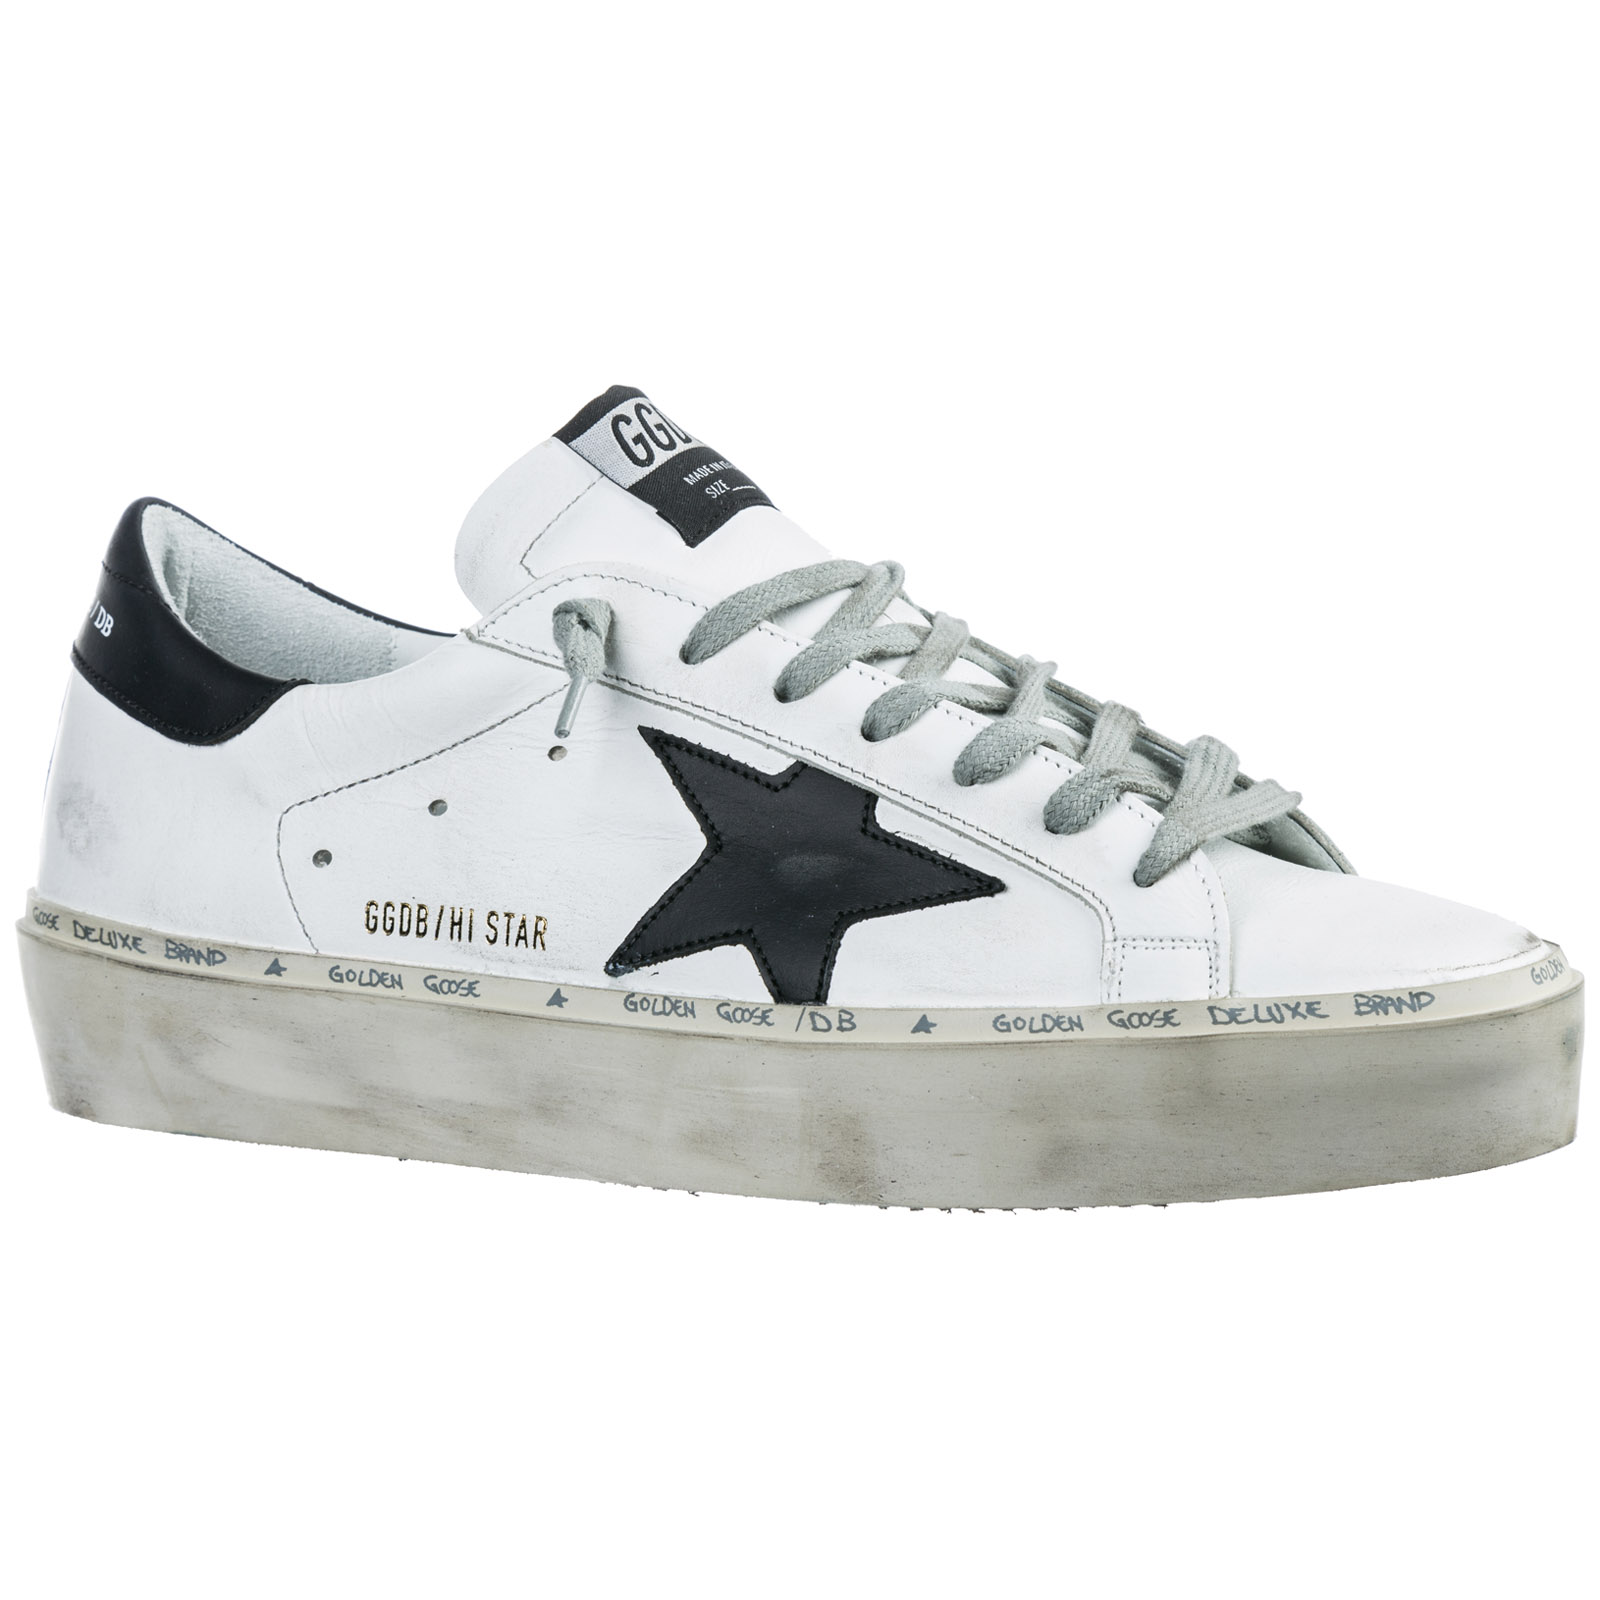 Men's shoes leather trainers sneakers hi star